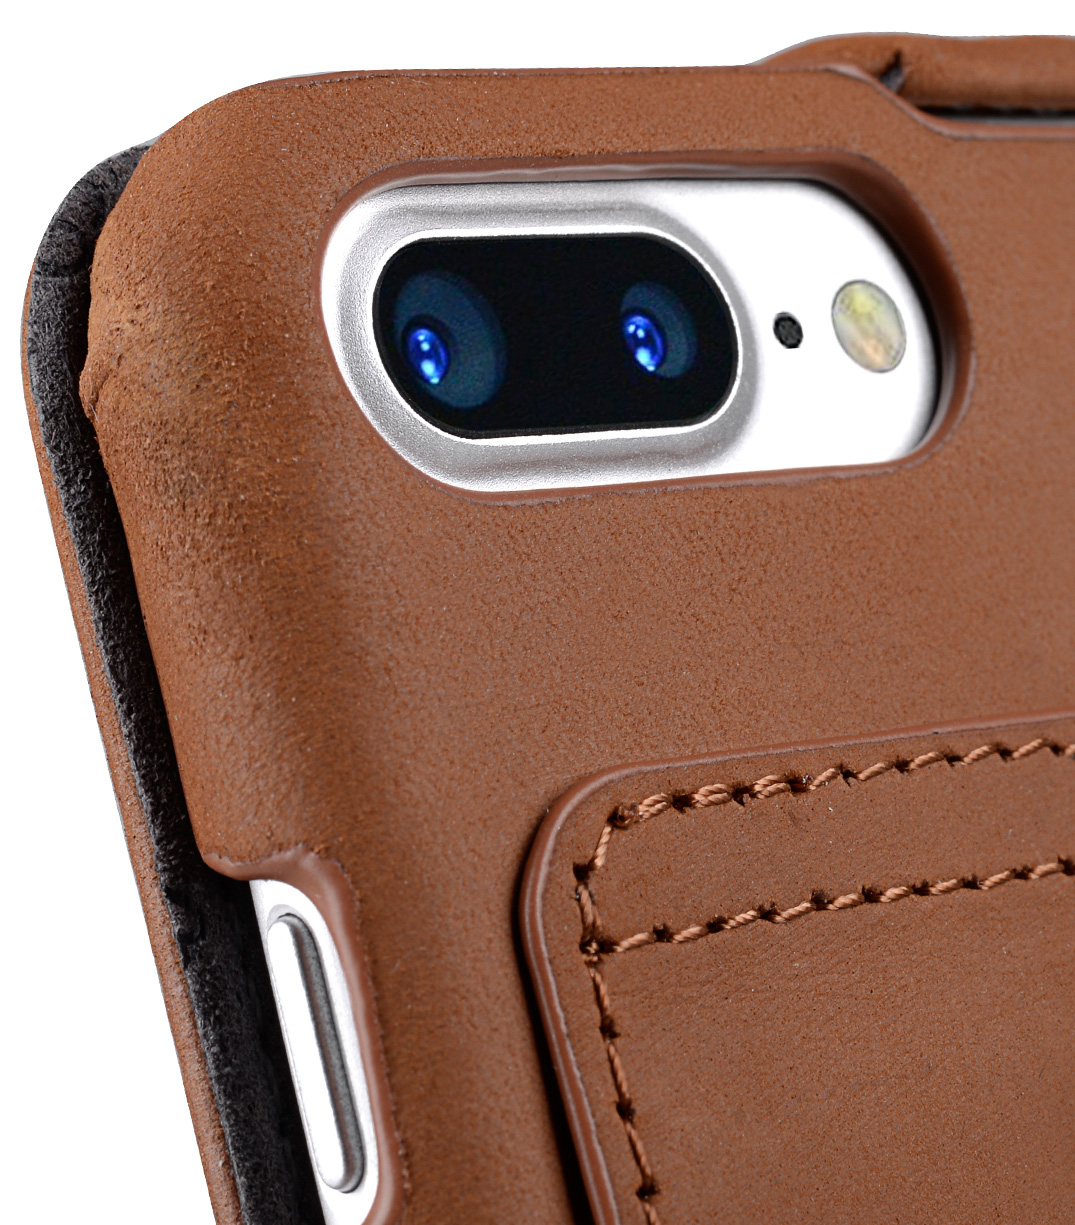 """Melkco Premium Leather Case for Apple iPhone 7 / 8 Plus (5.5"""") - Jacka Stand Type (Classic Vintage Brown)"""